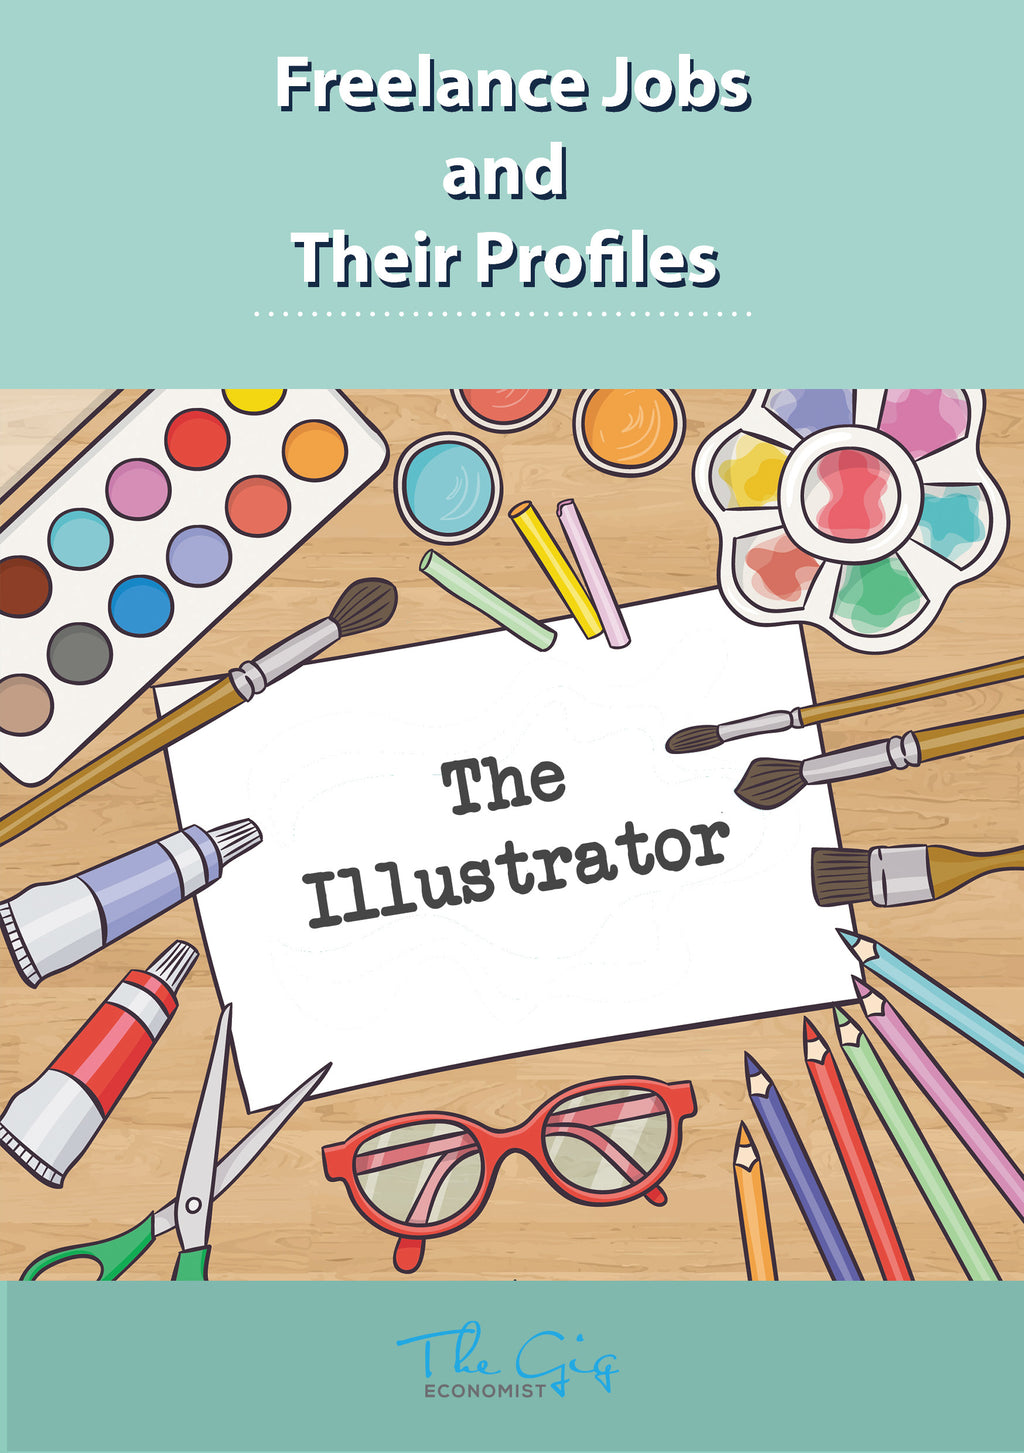 Freelance Illustrator Job Profile | The Gig Economist